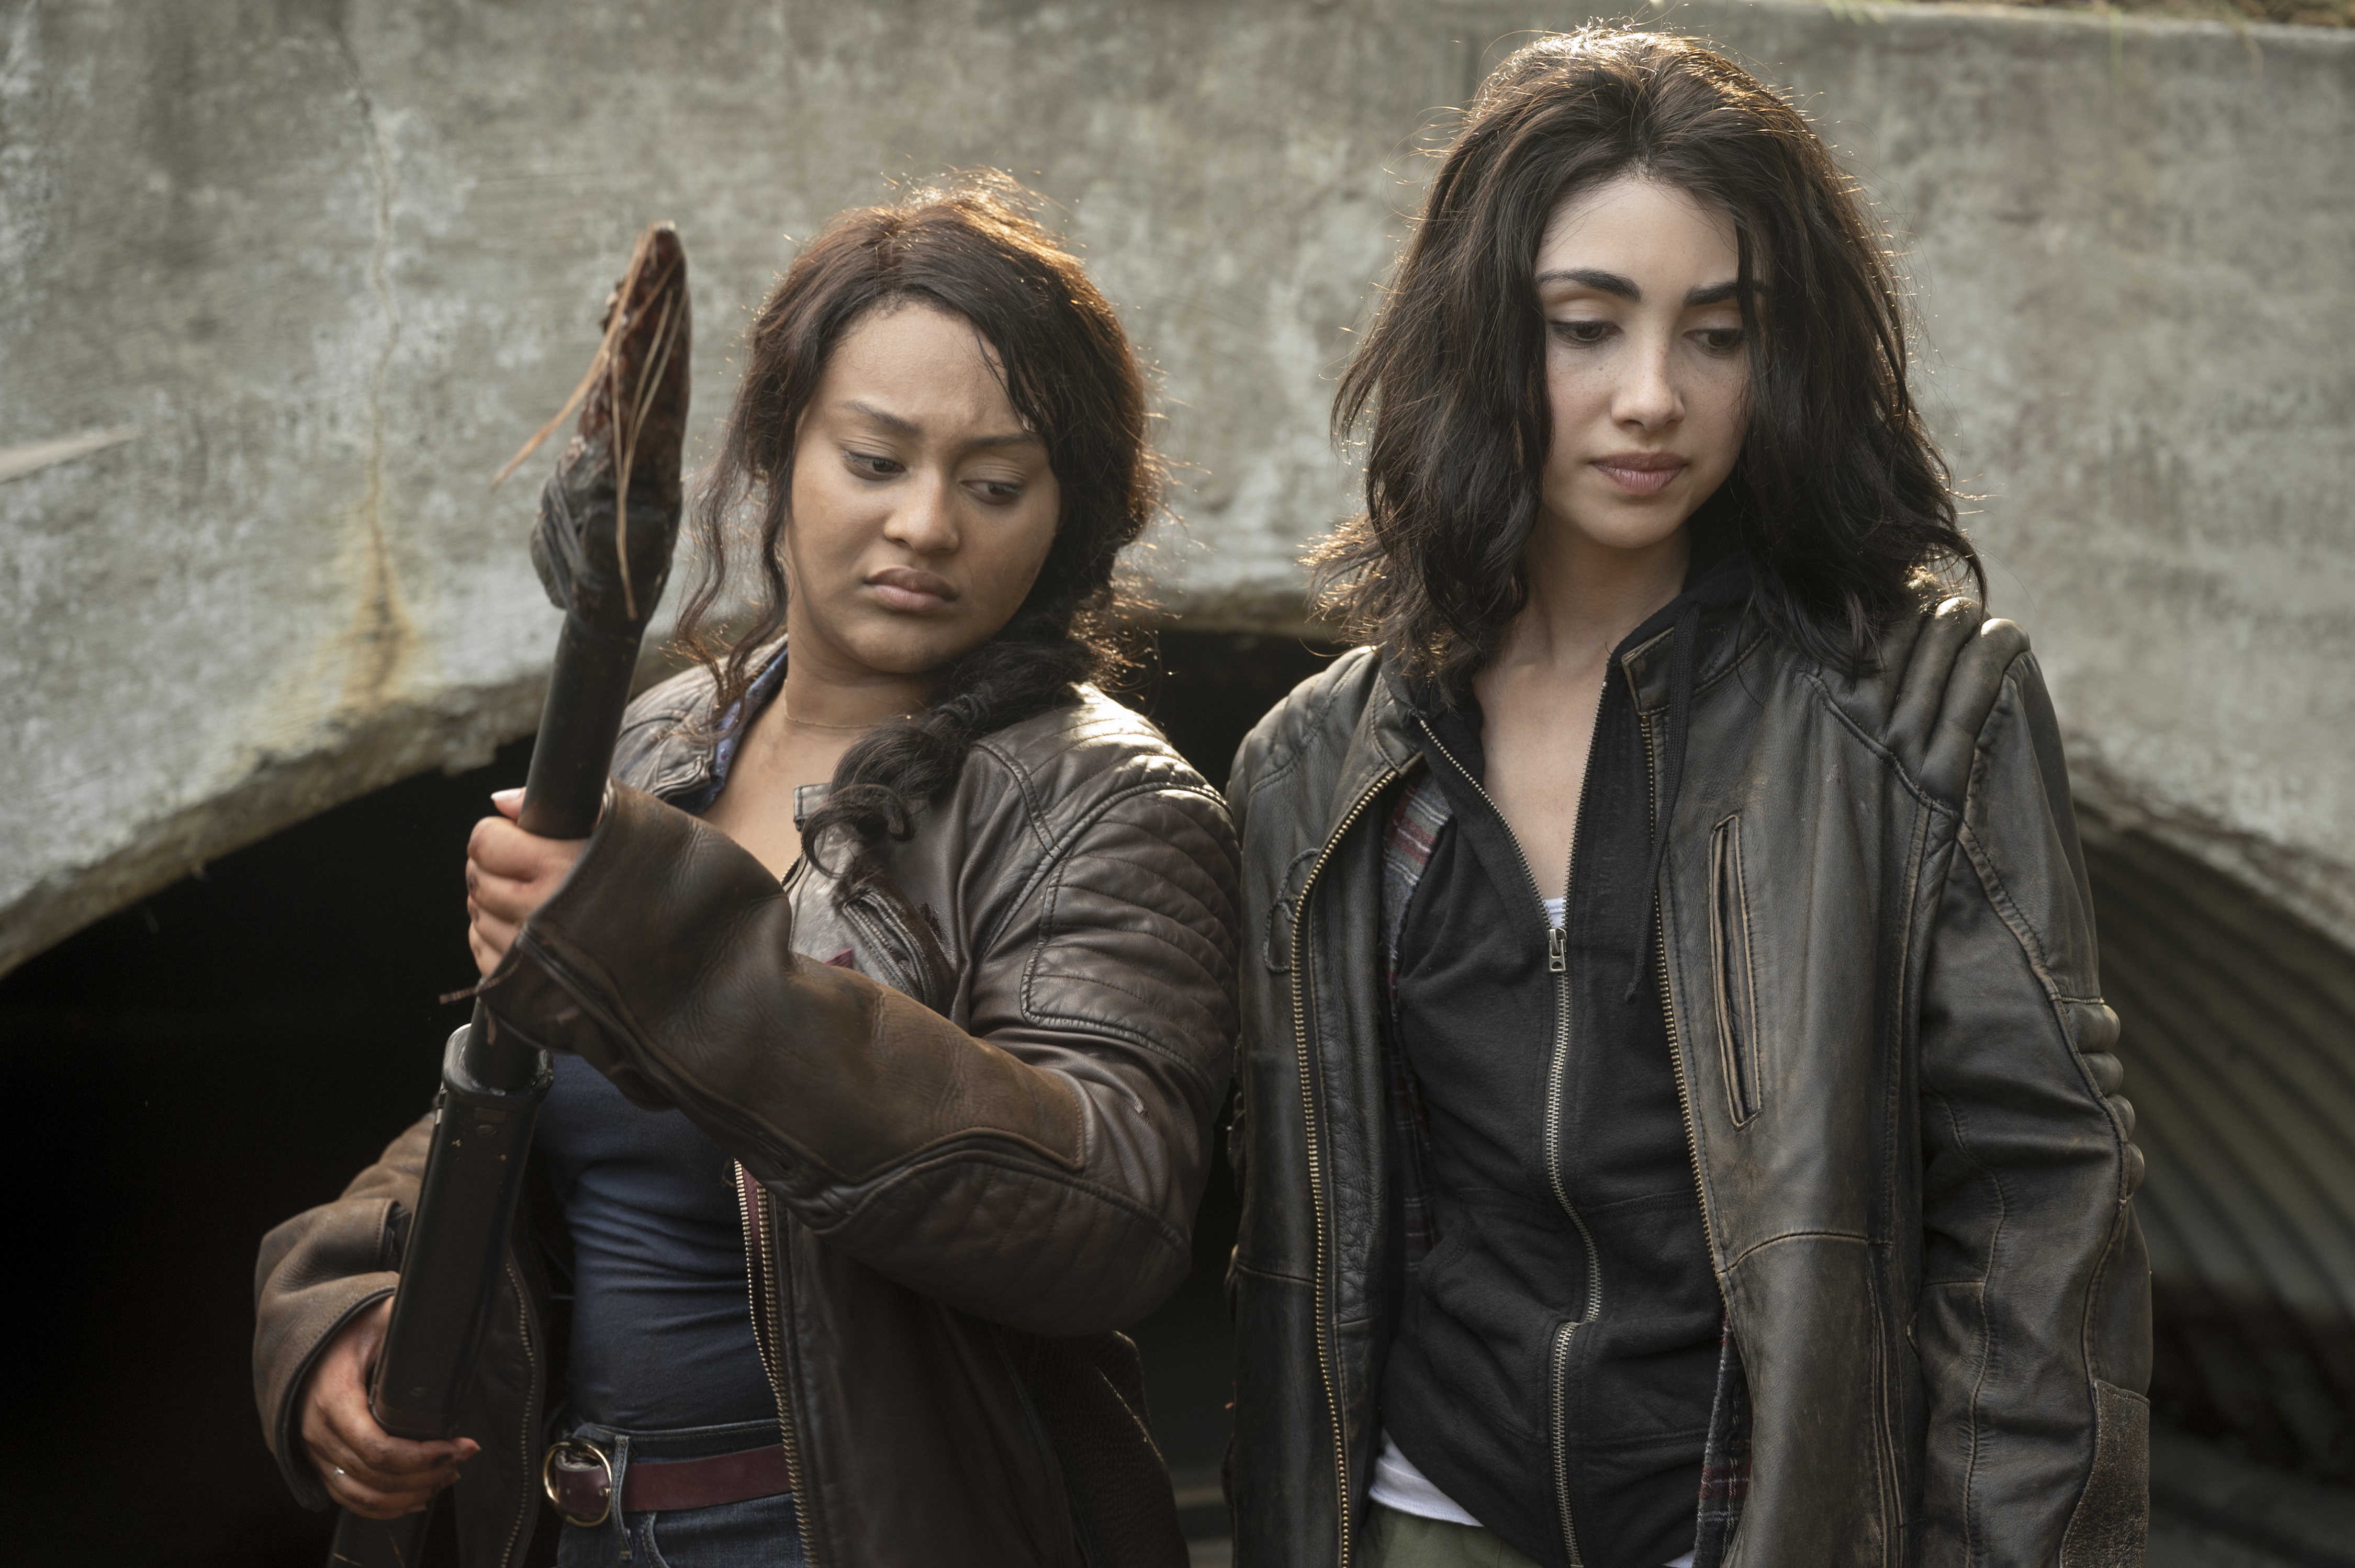 'The Walking Dead: World Beyond' 1x02 Review